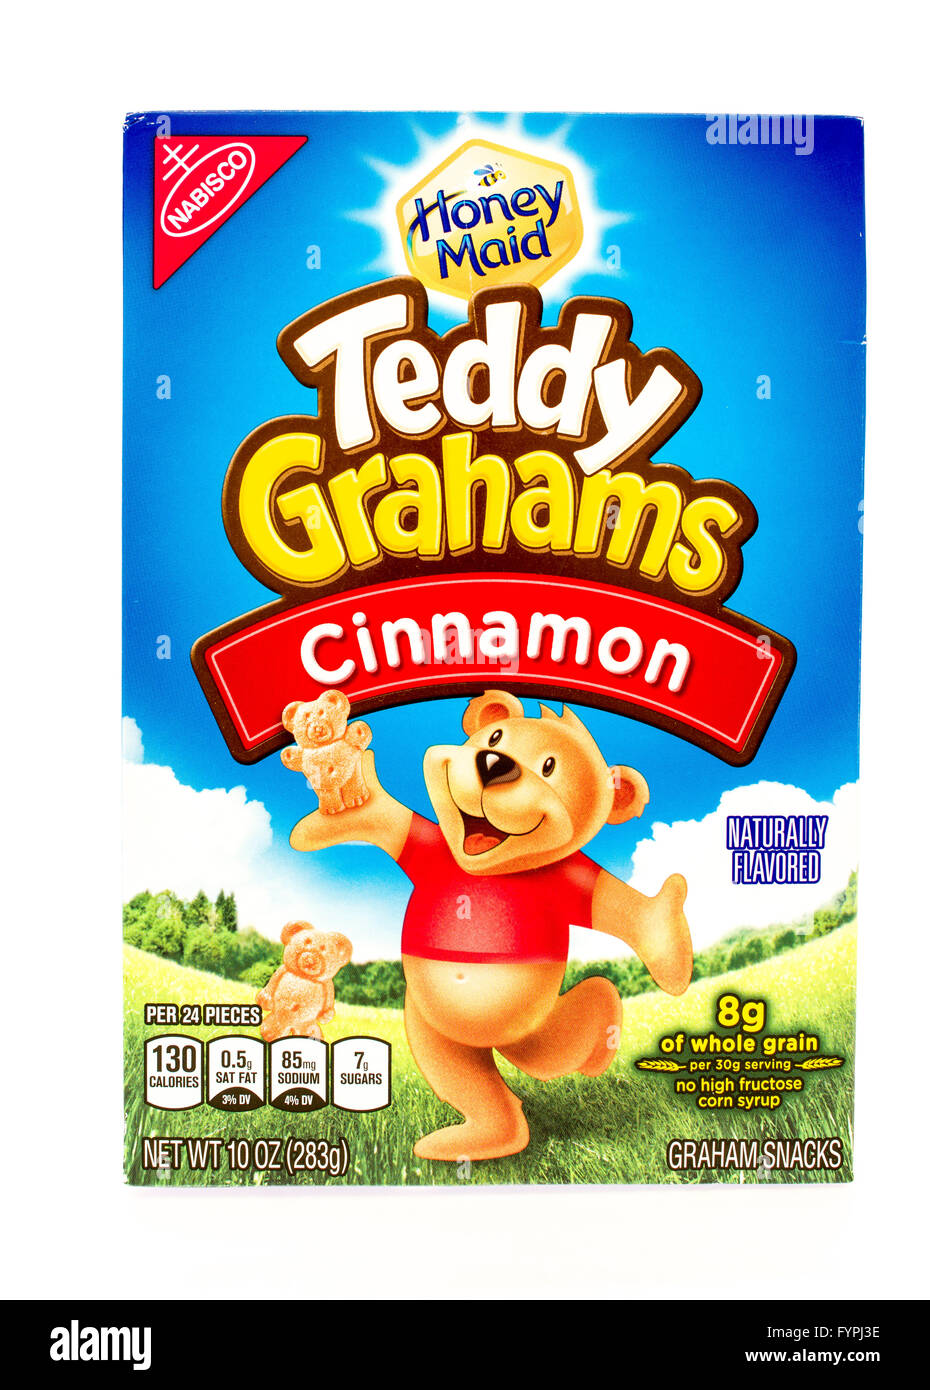 Winneconne, WI - 29 August 2015: Box of Teddy Grahams in cinnamon flavor Stock Photo